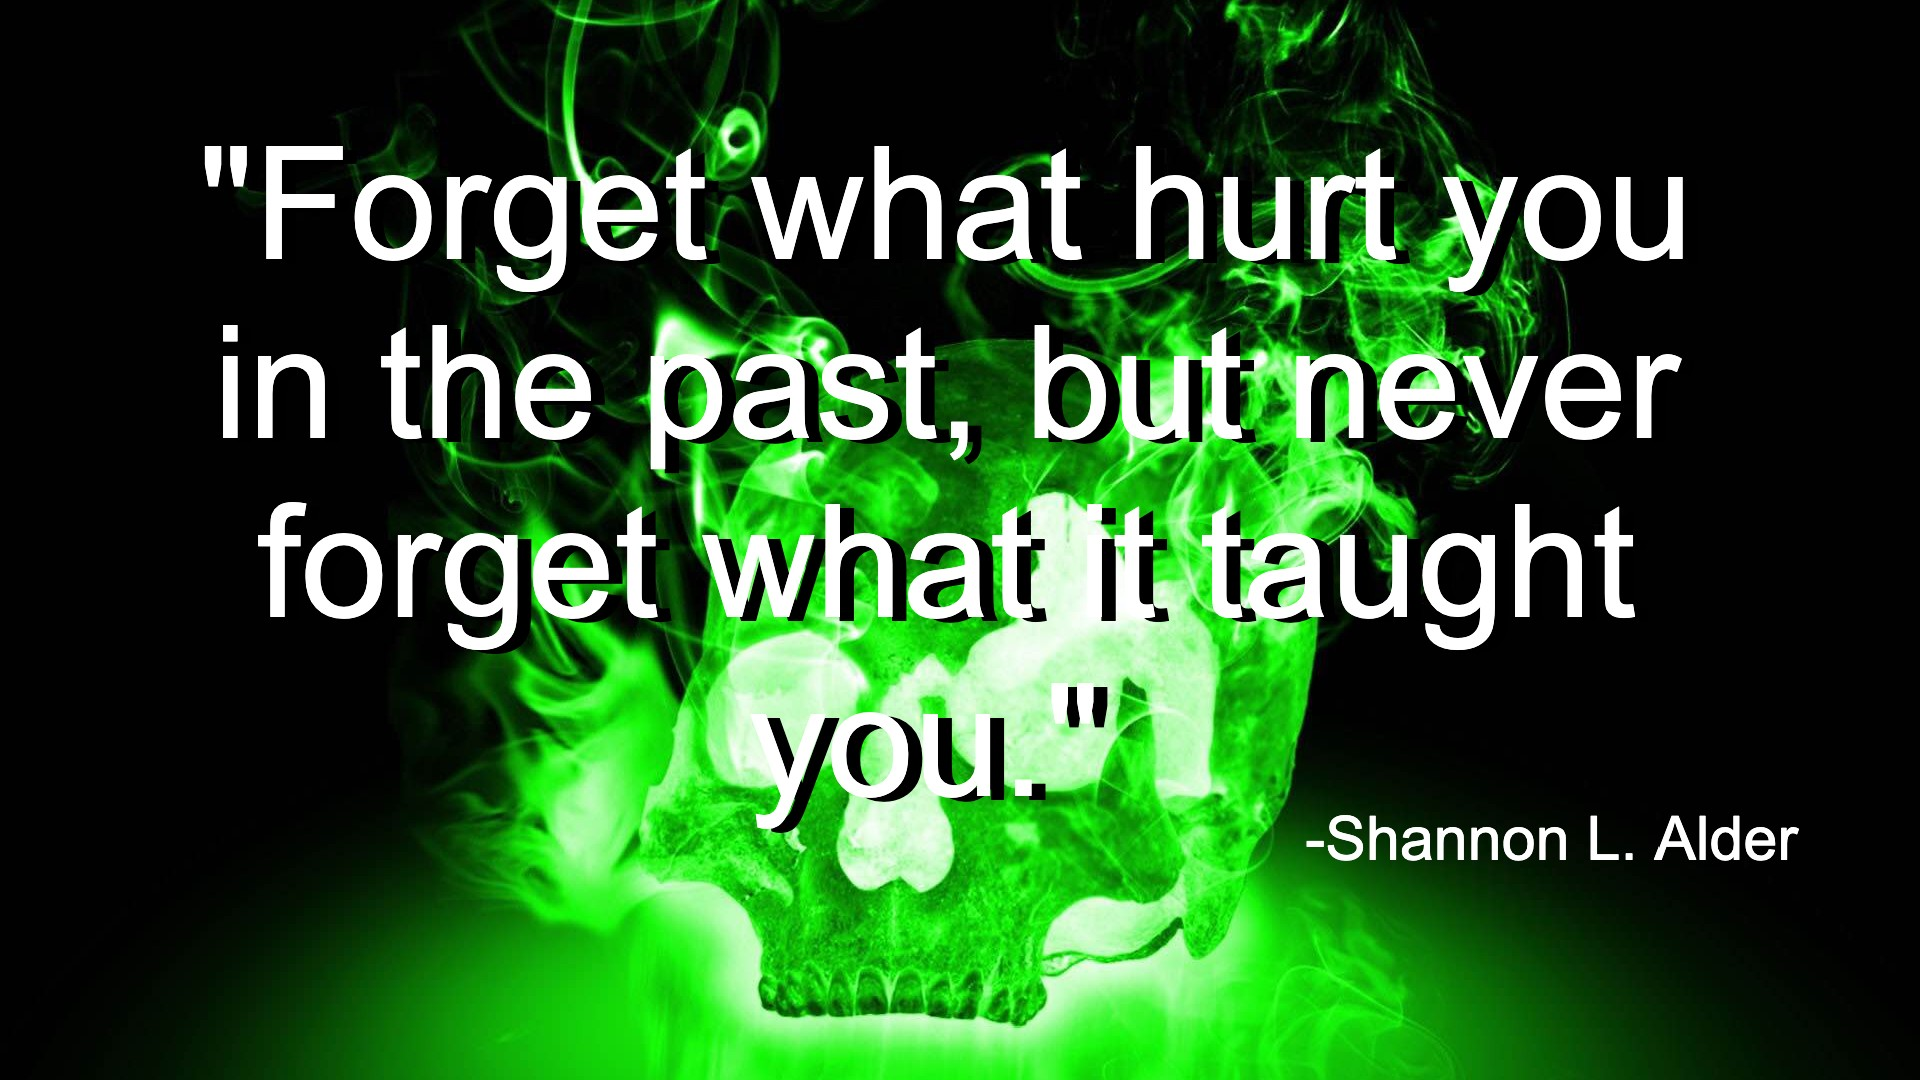 """Can someone describe the deep meaning behind this quote please? """"Forget what hurt you in the past, but never forget what it taught you."""" -Shannon L. Alder {1920 x 1080]"""